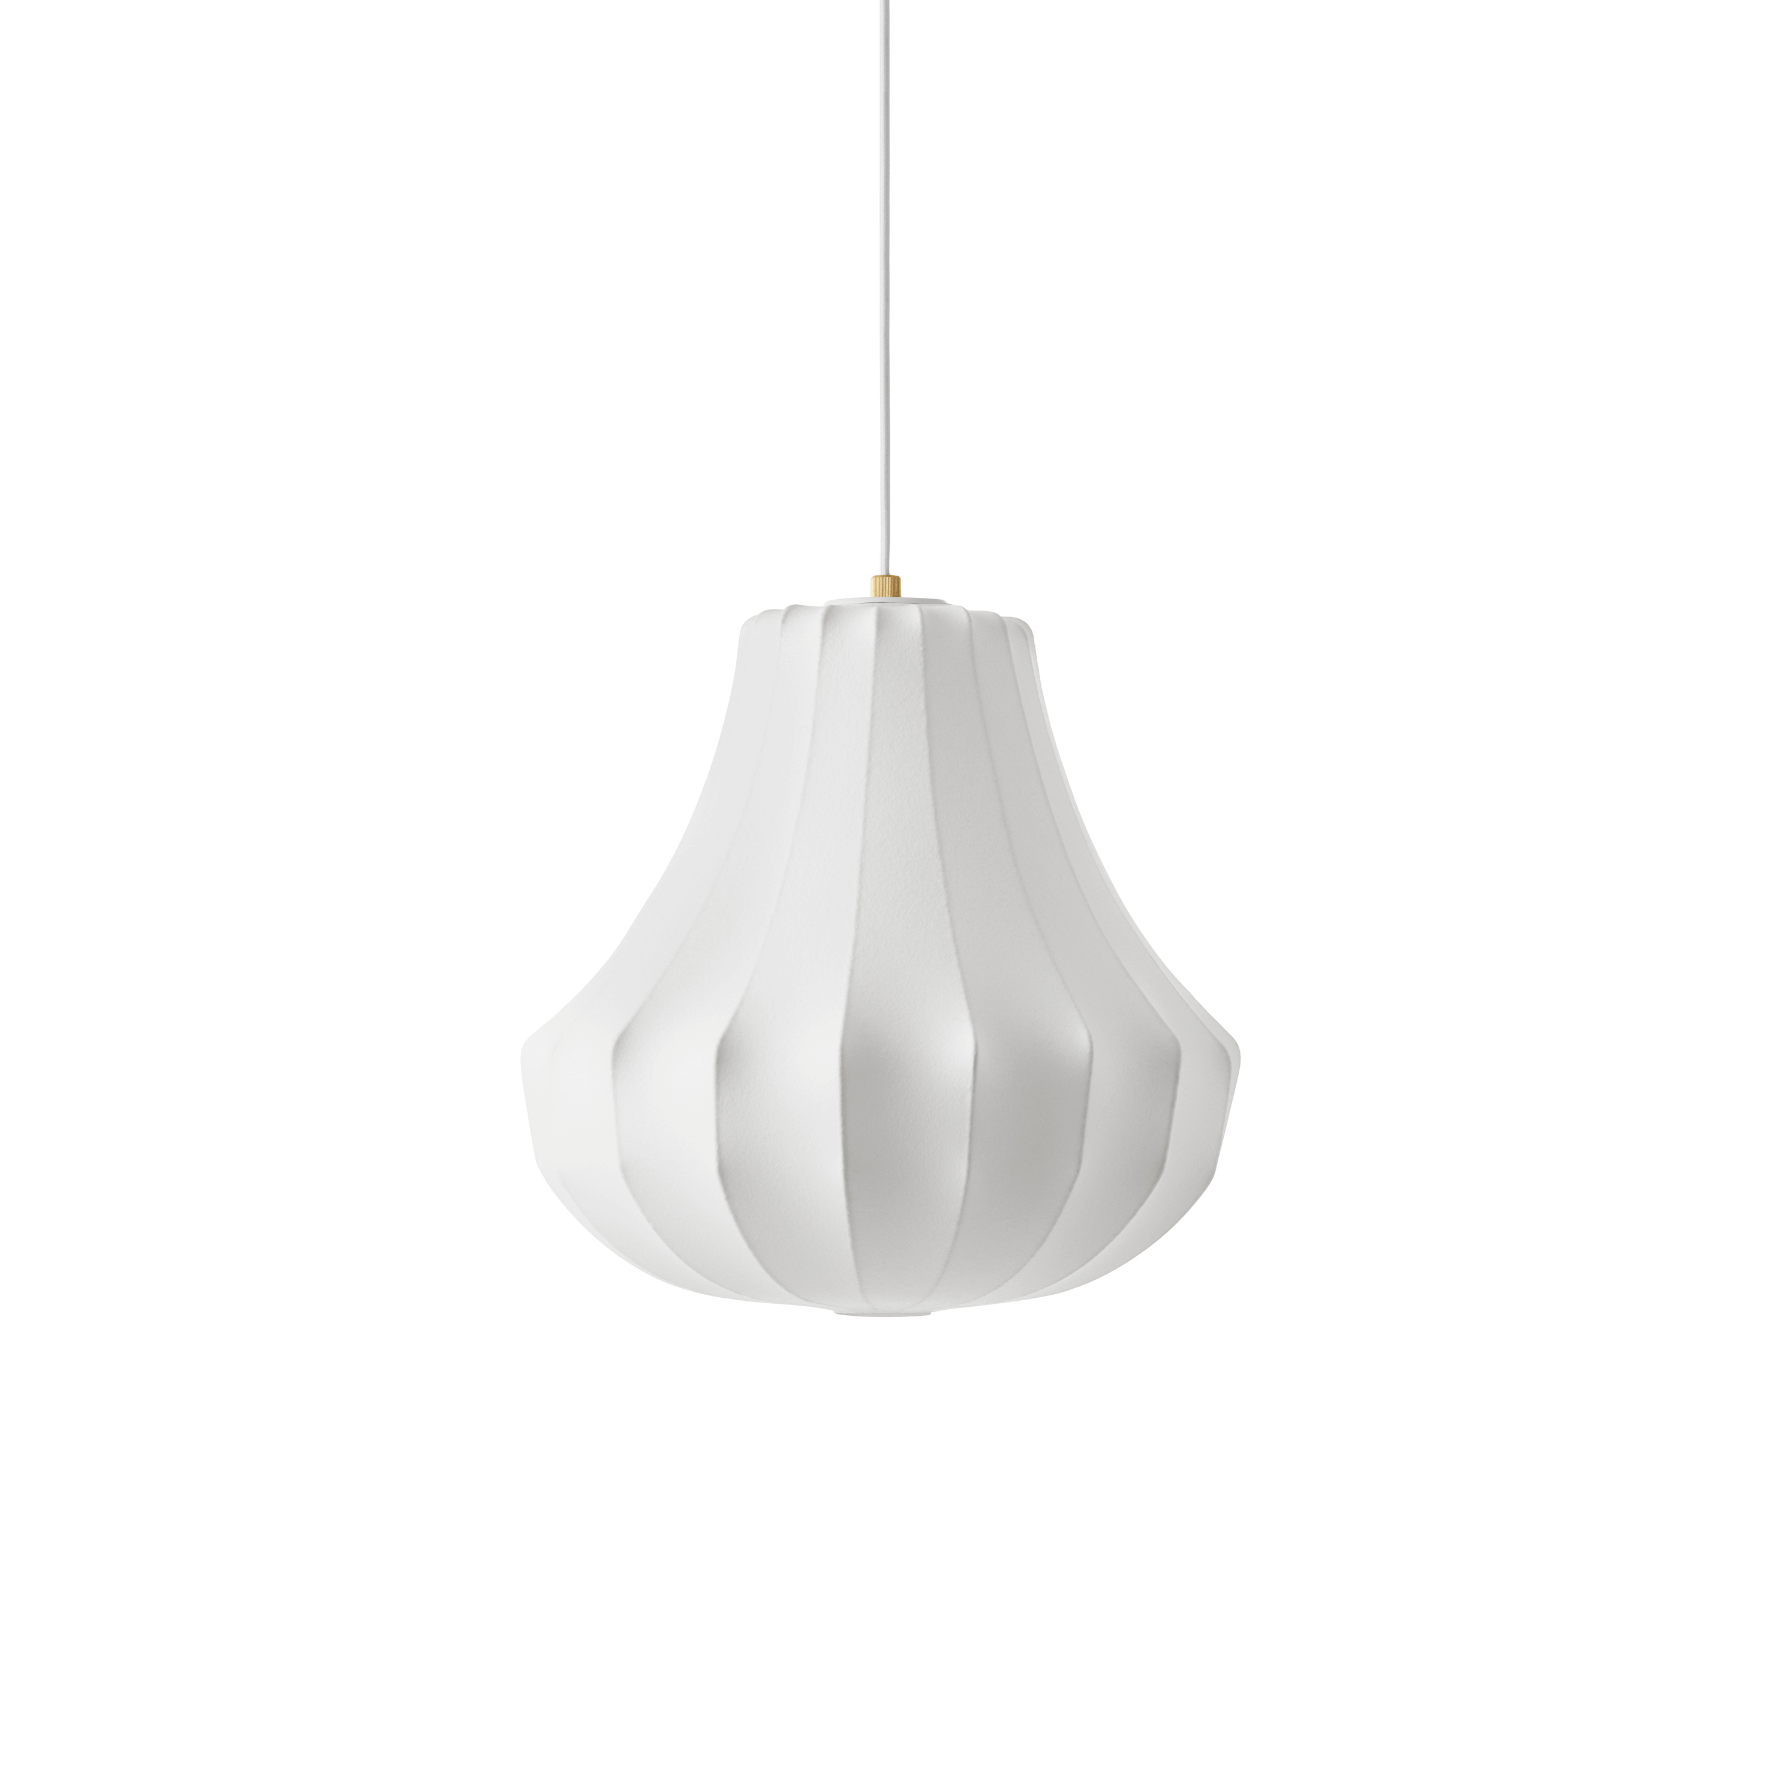 Suspension Phantom - Normann Copenhagen